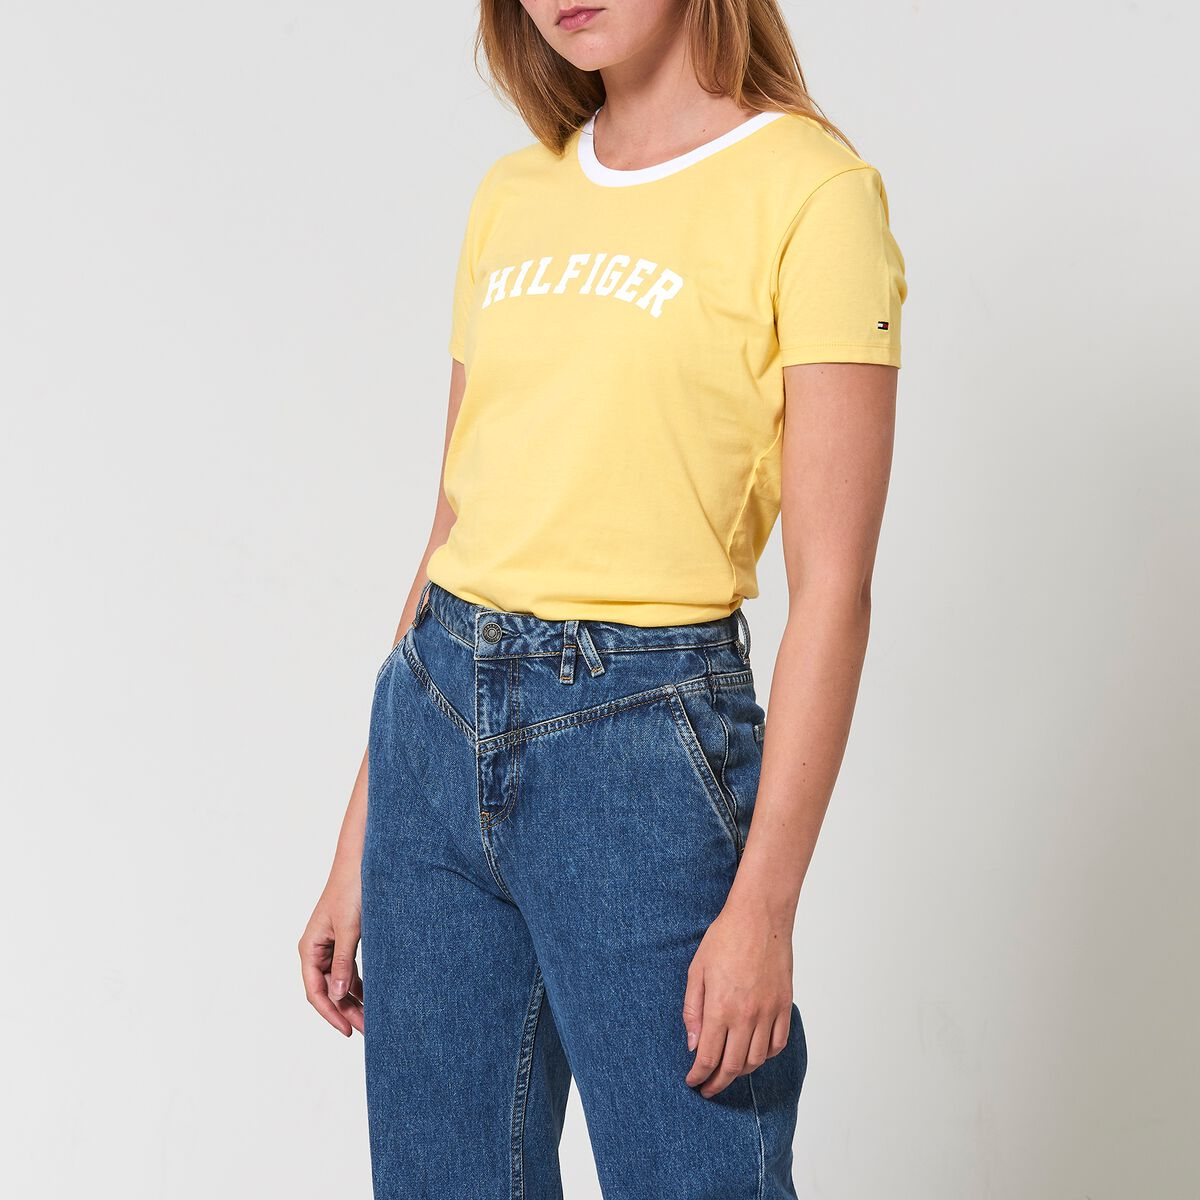 9fecd6531 Women T-shirt Tommy Hilfiger Yellow Buy Online